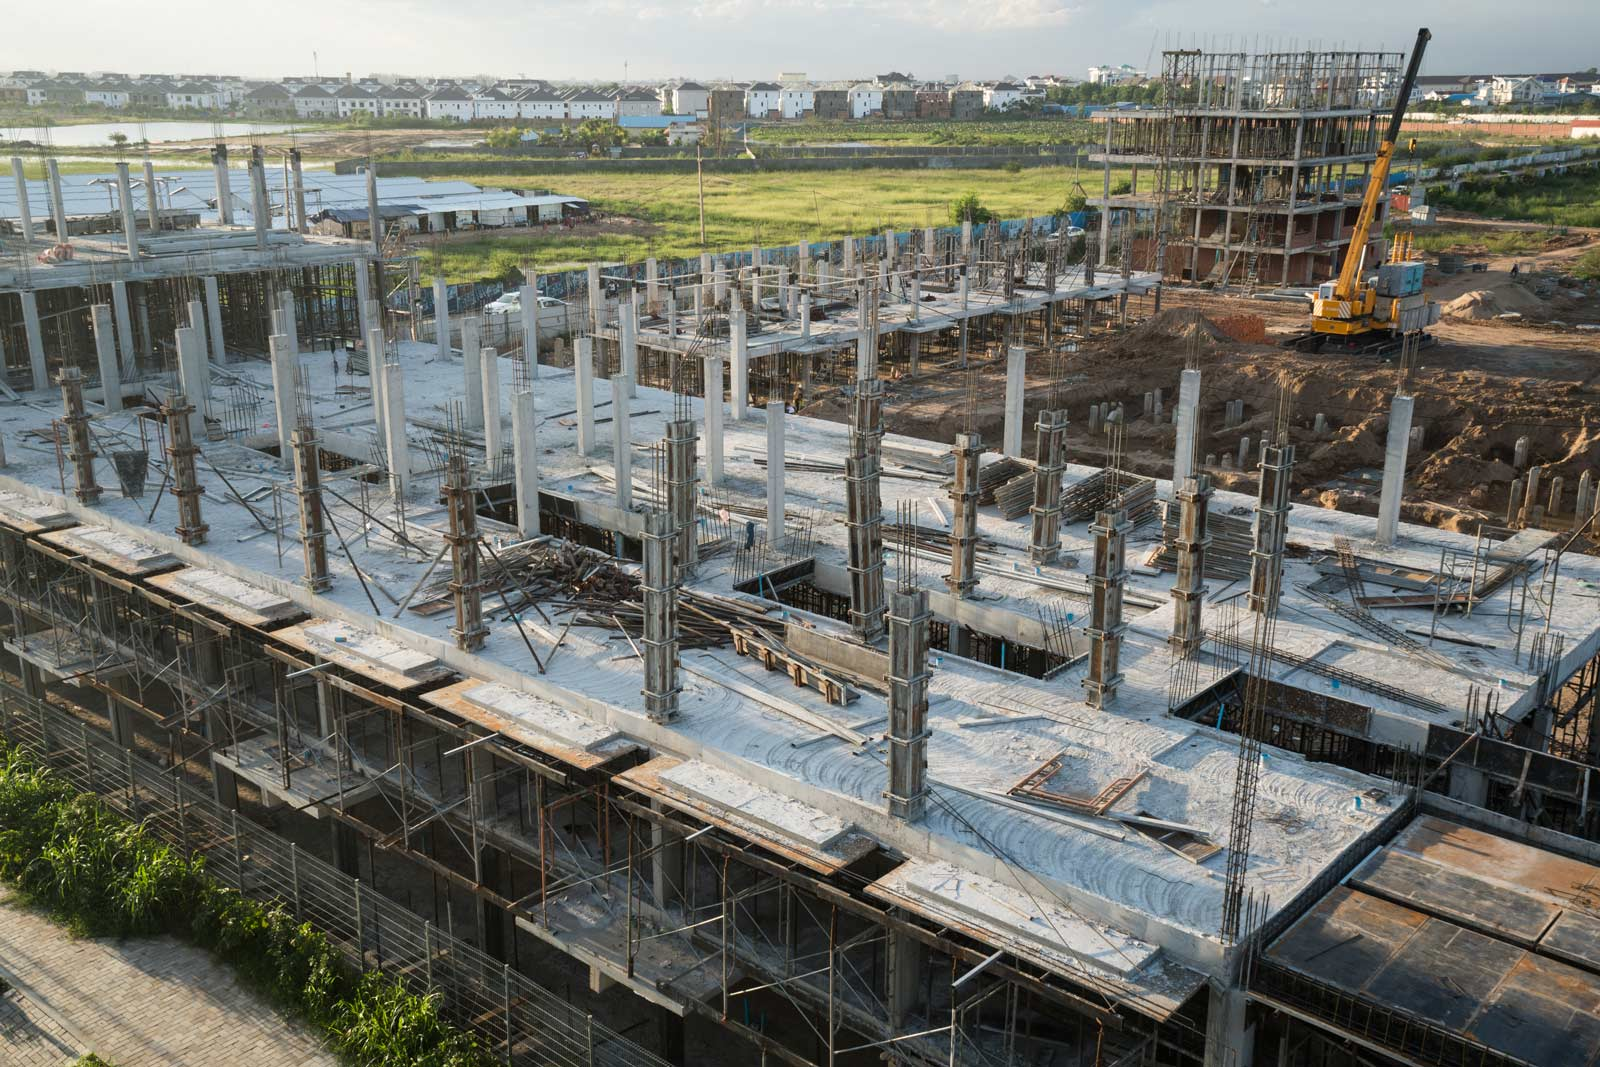 Cambodia's construction boom is drawing many into the real estate business for a chance to turn a quick profit. Photo: Nigel Dickinson